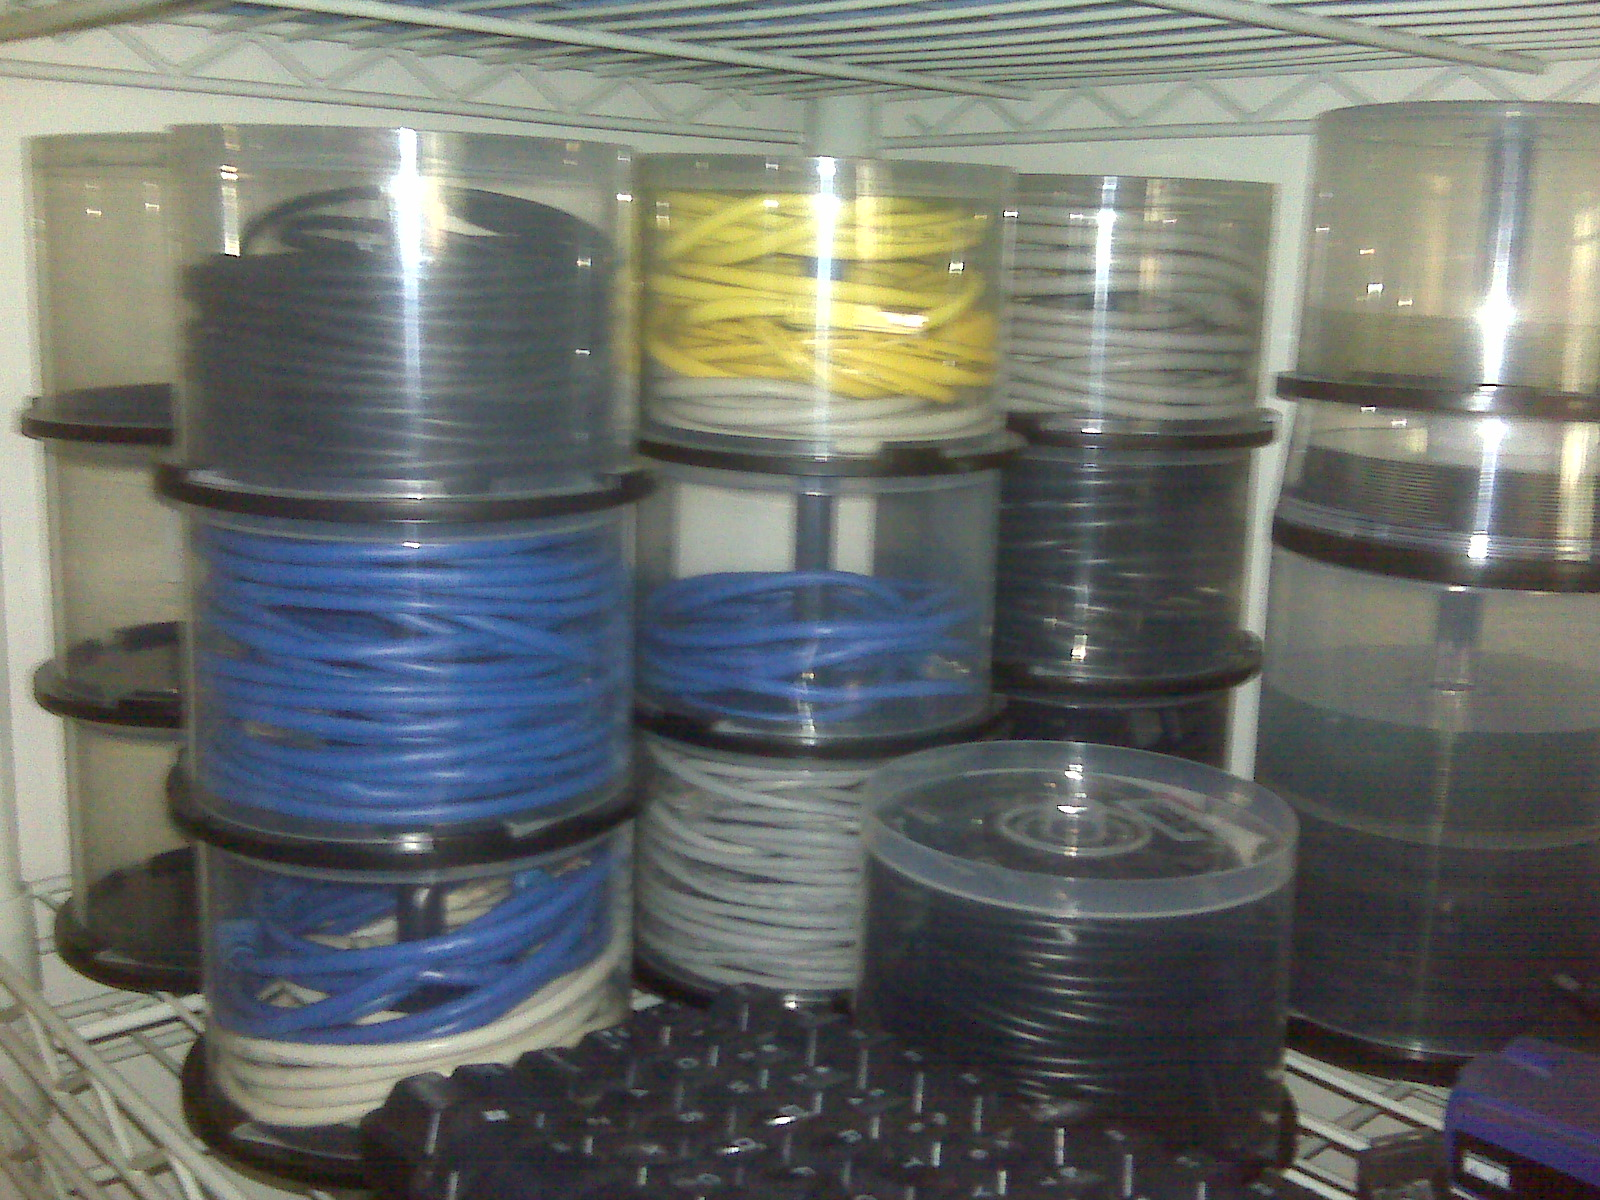 Reusing old optical disc spindles for cable storage